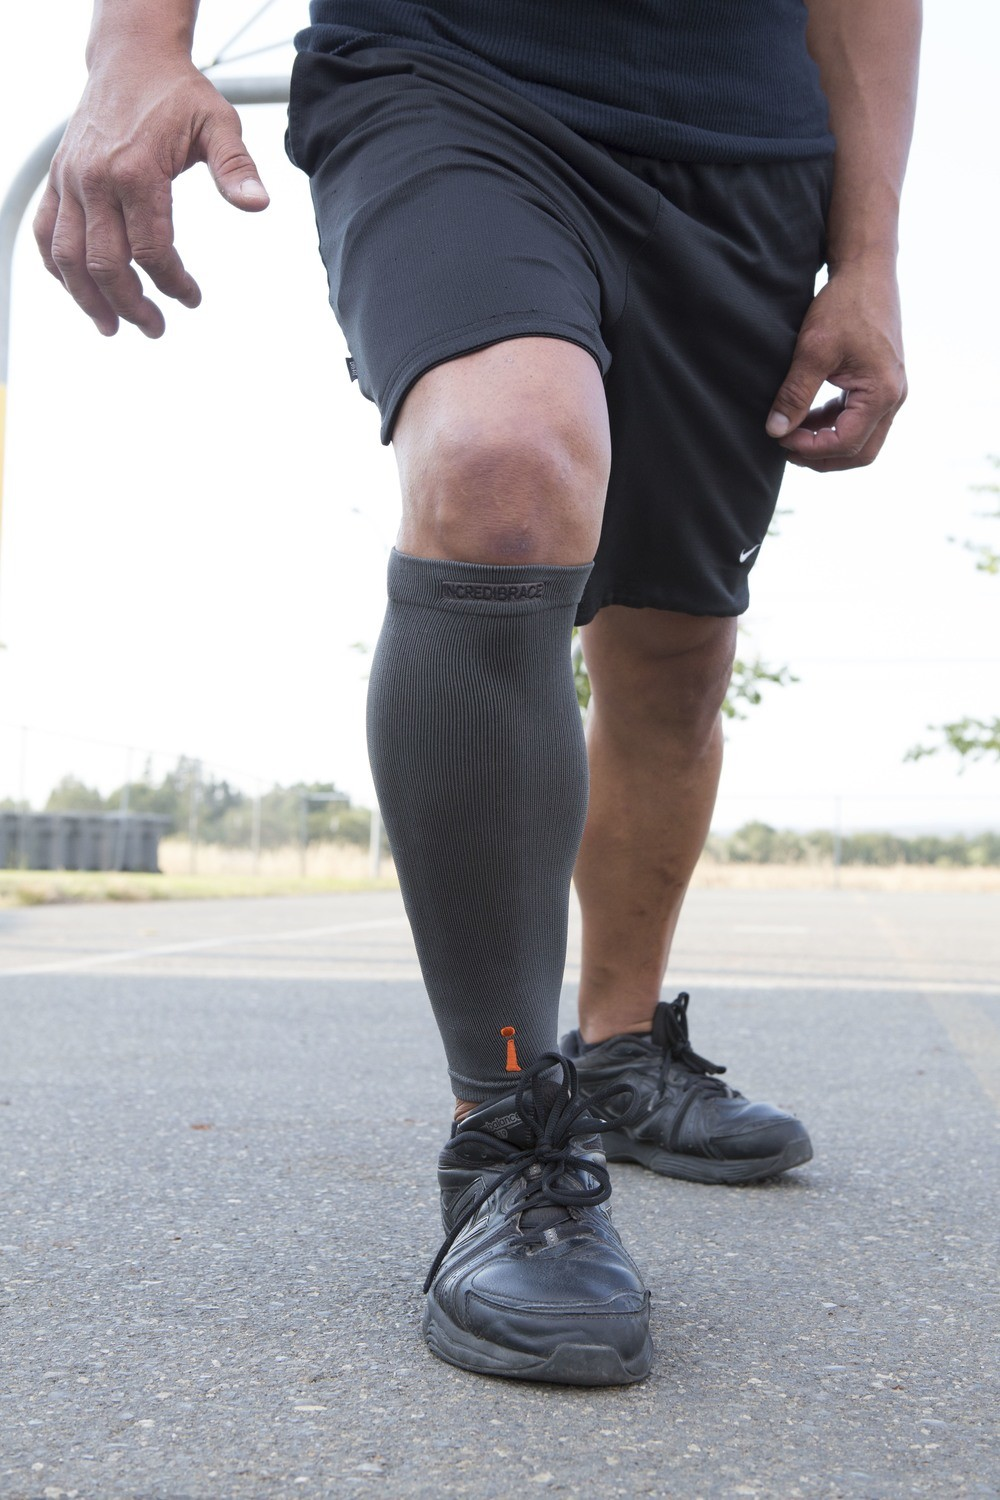 Calf performance brace with Carbonized bamboo TS101